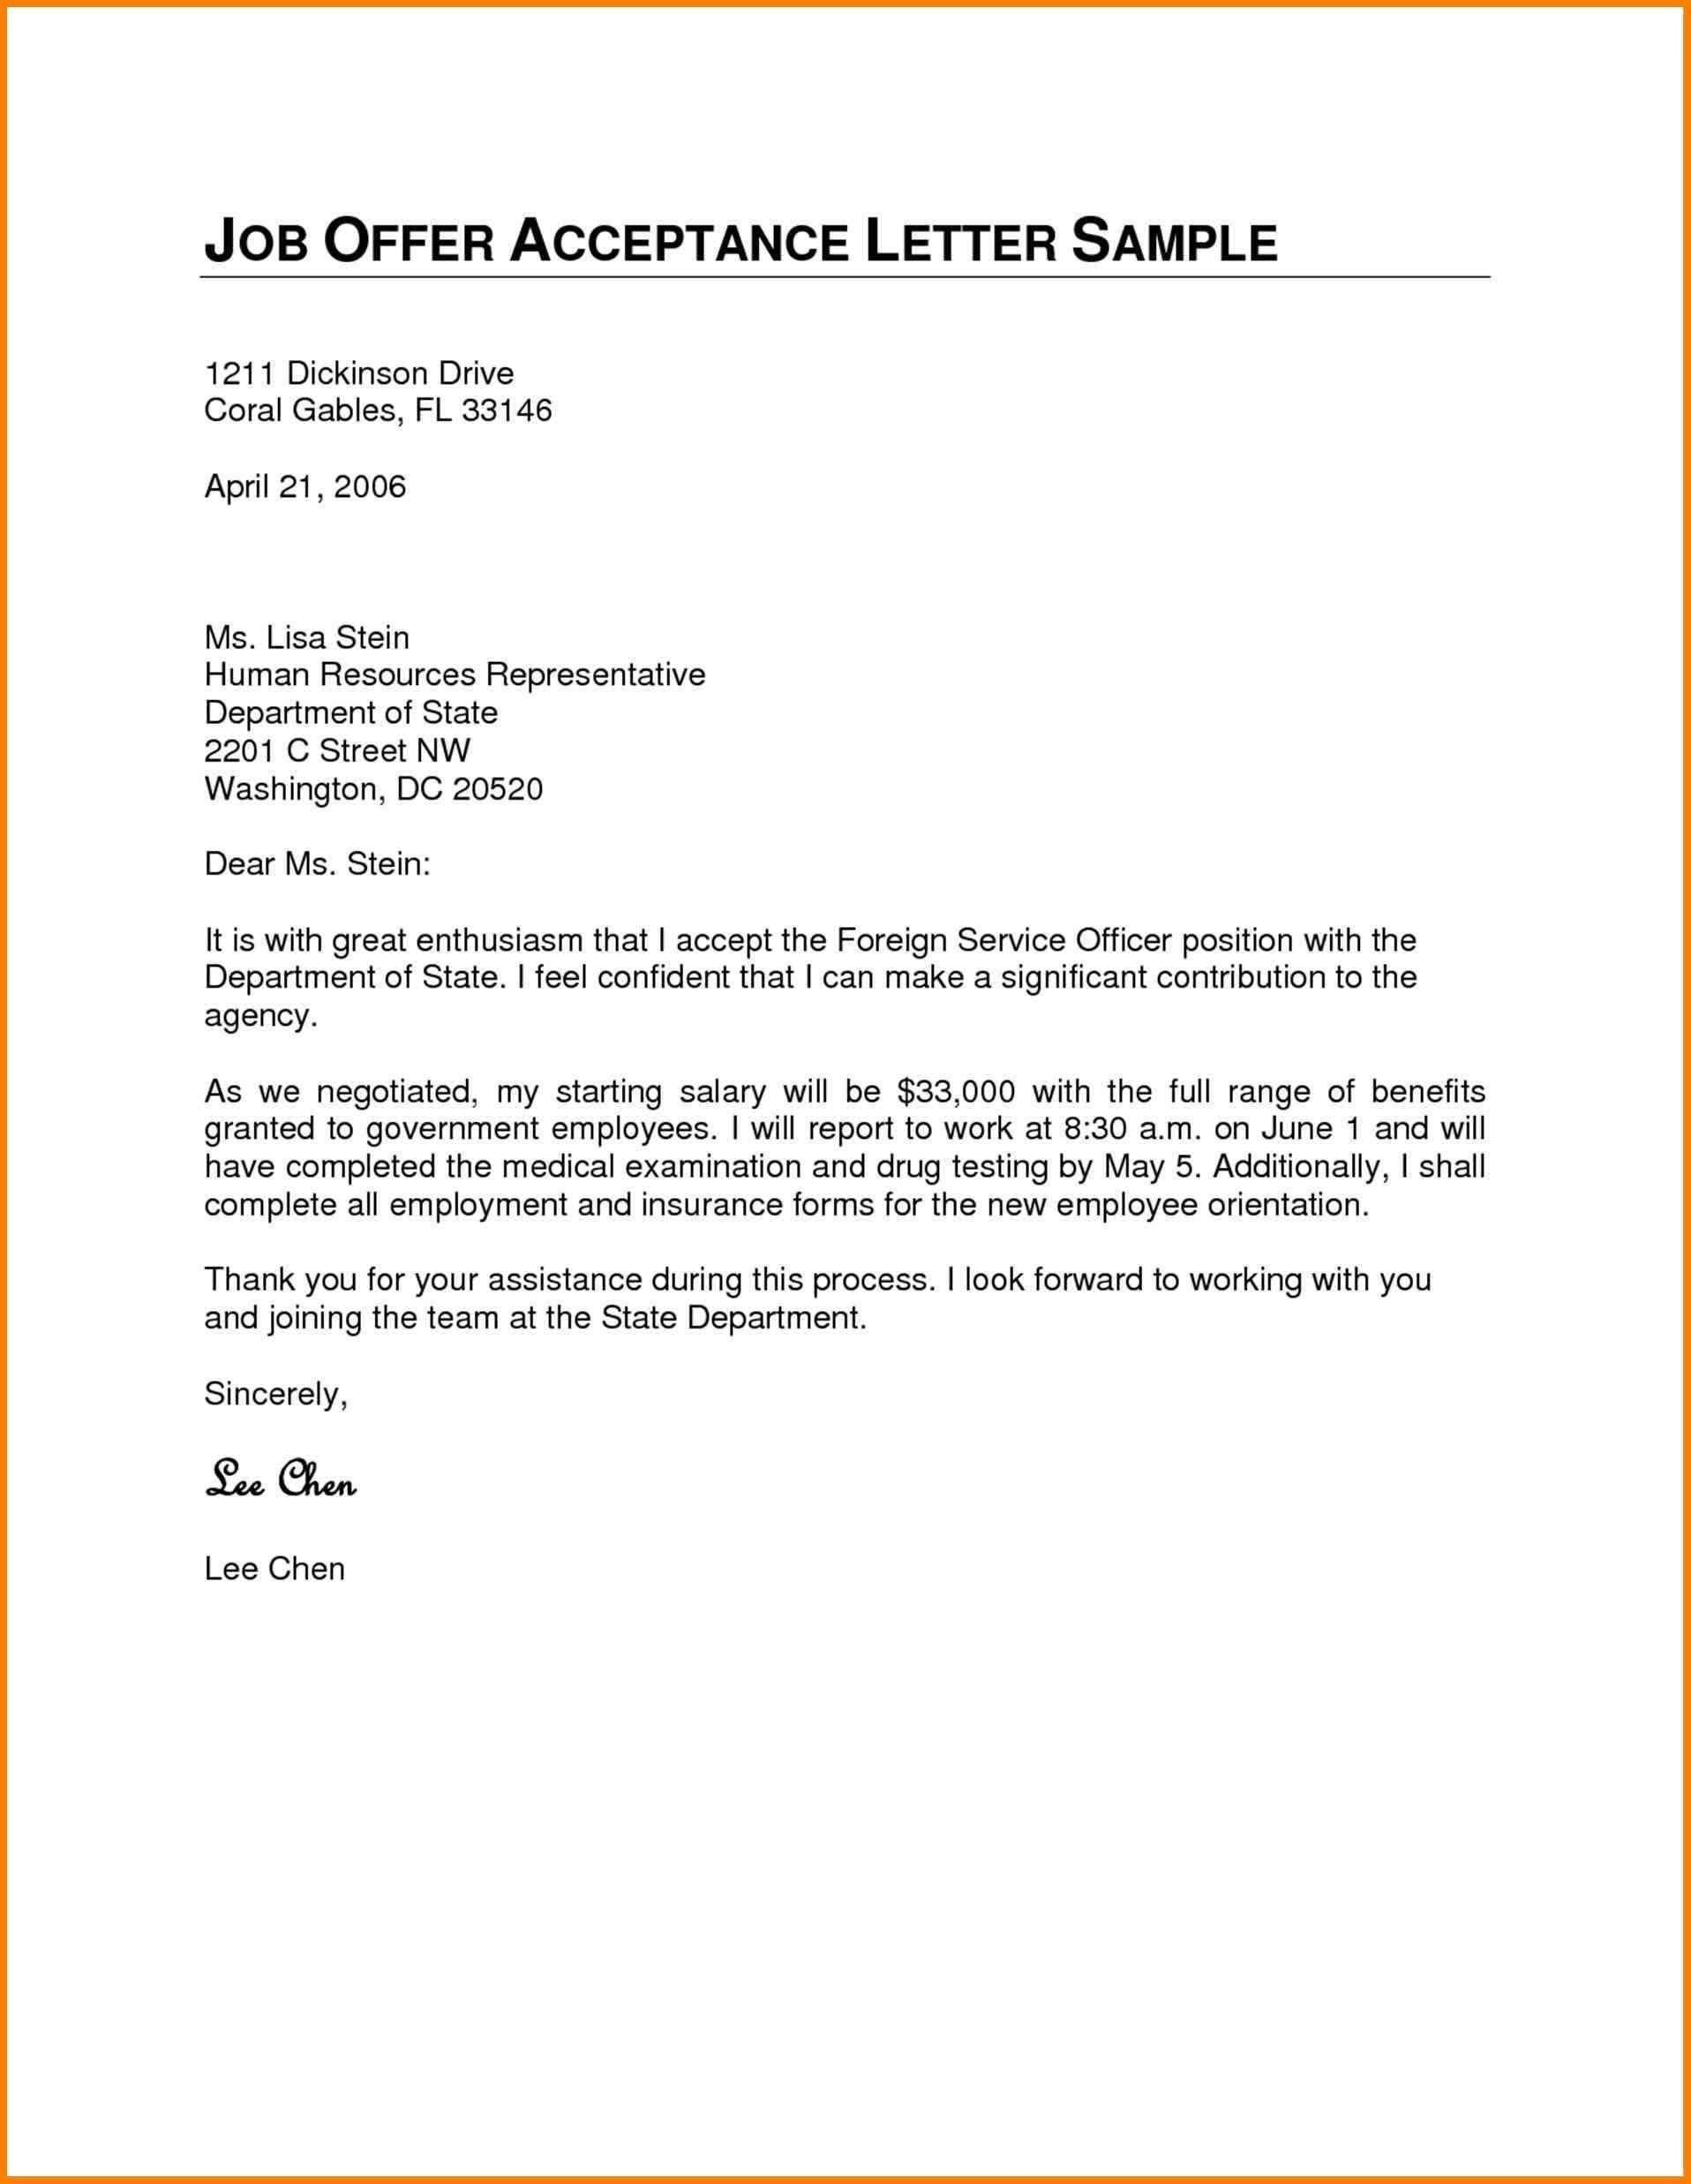 valid thank you letter after job acceptance offer full stack developer cv example personal objective for resume customer service qualifications